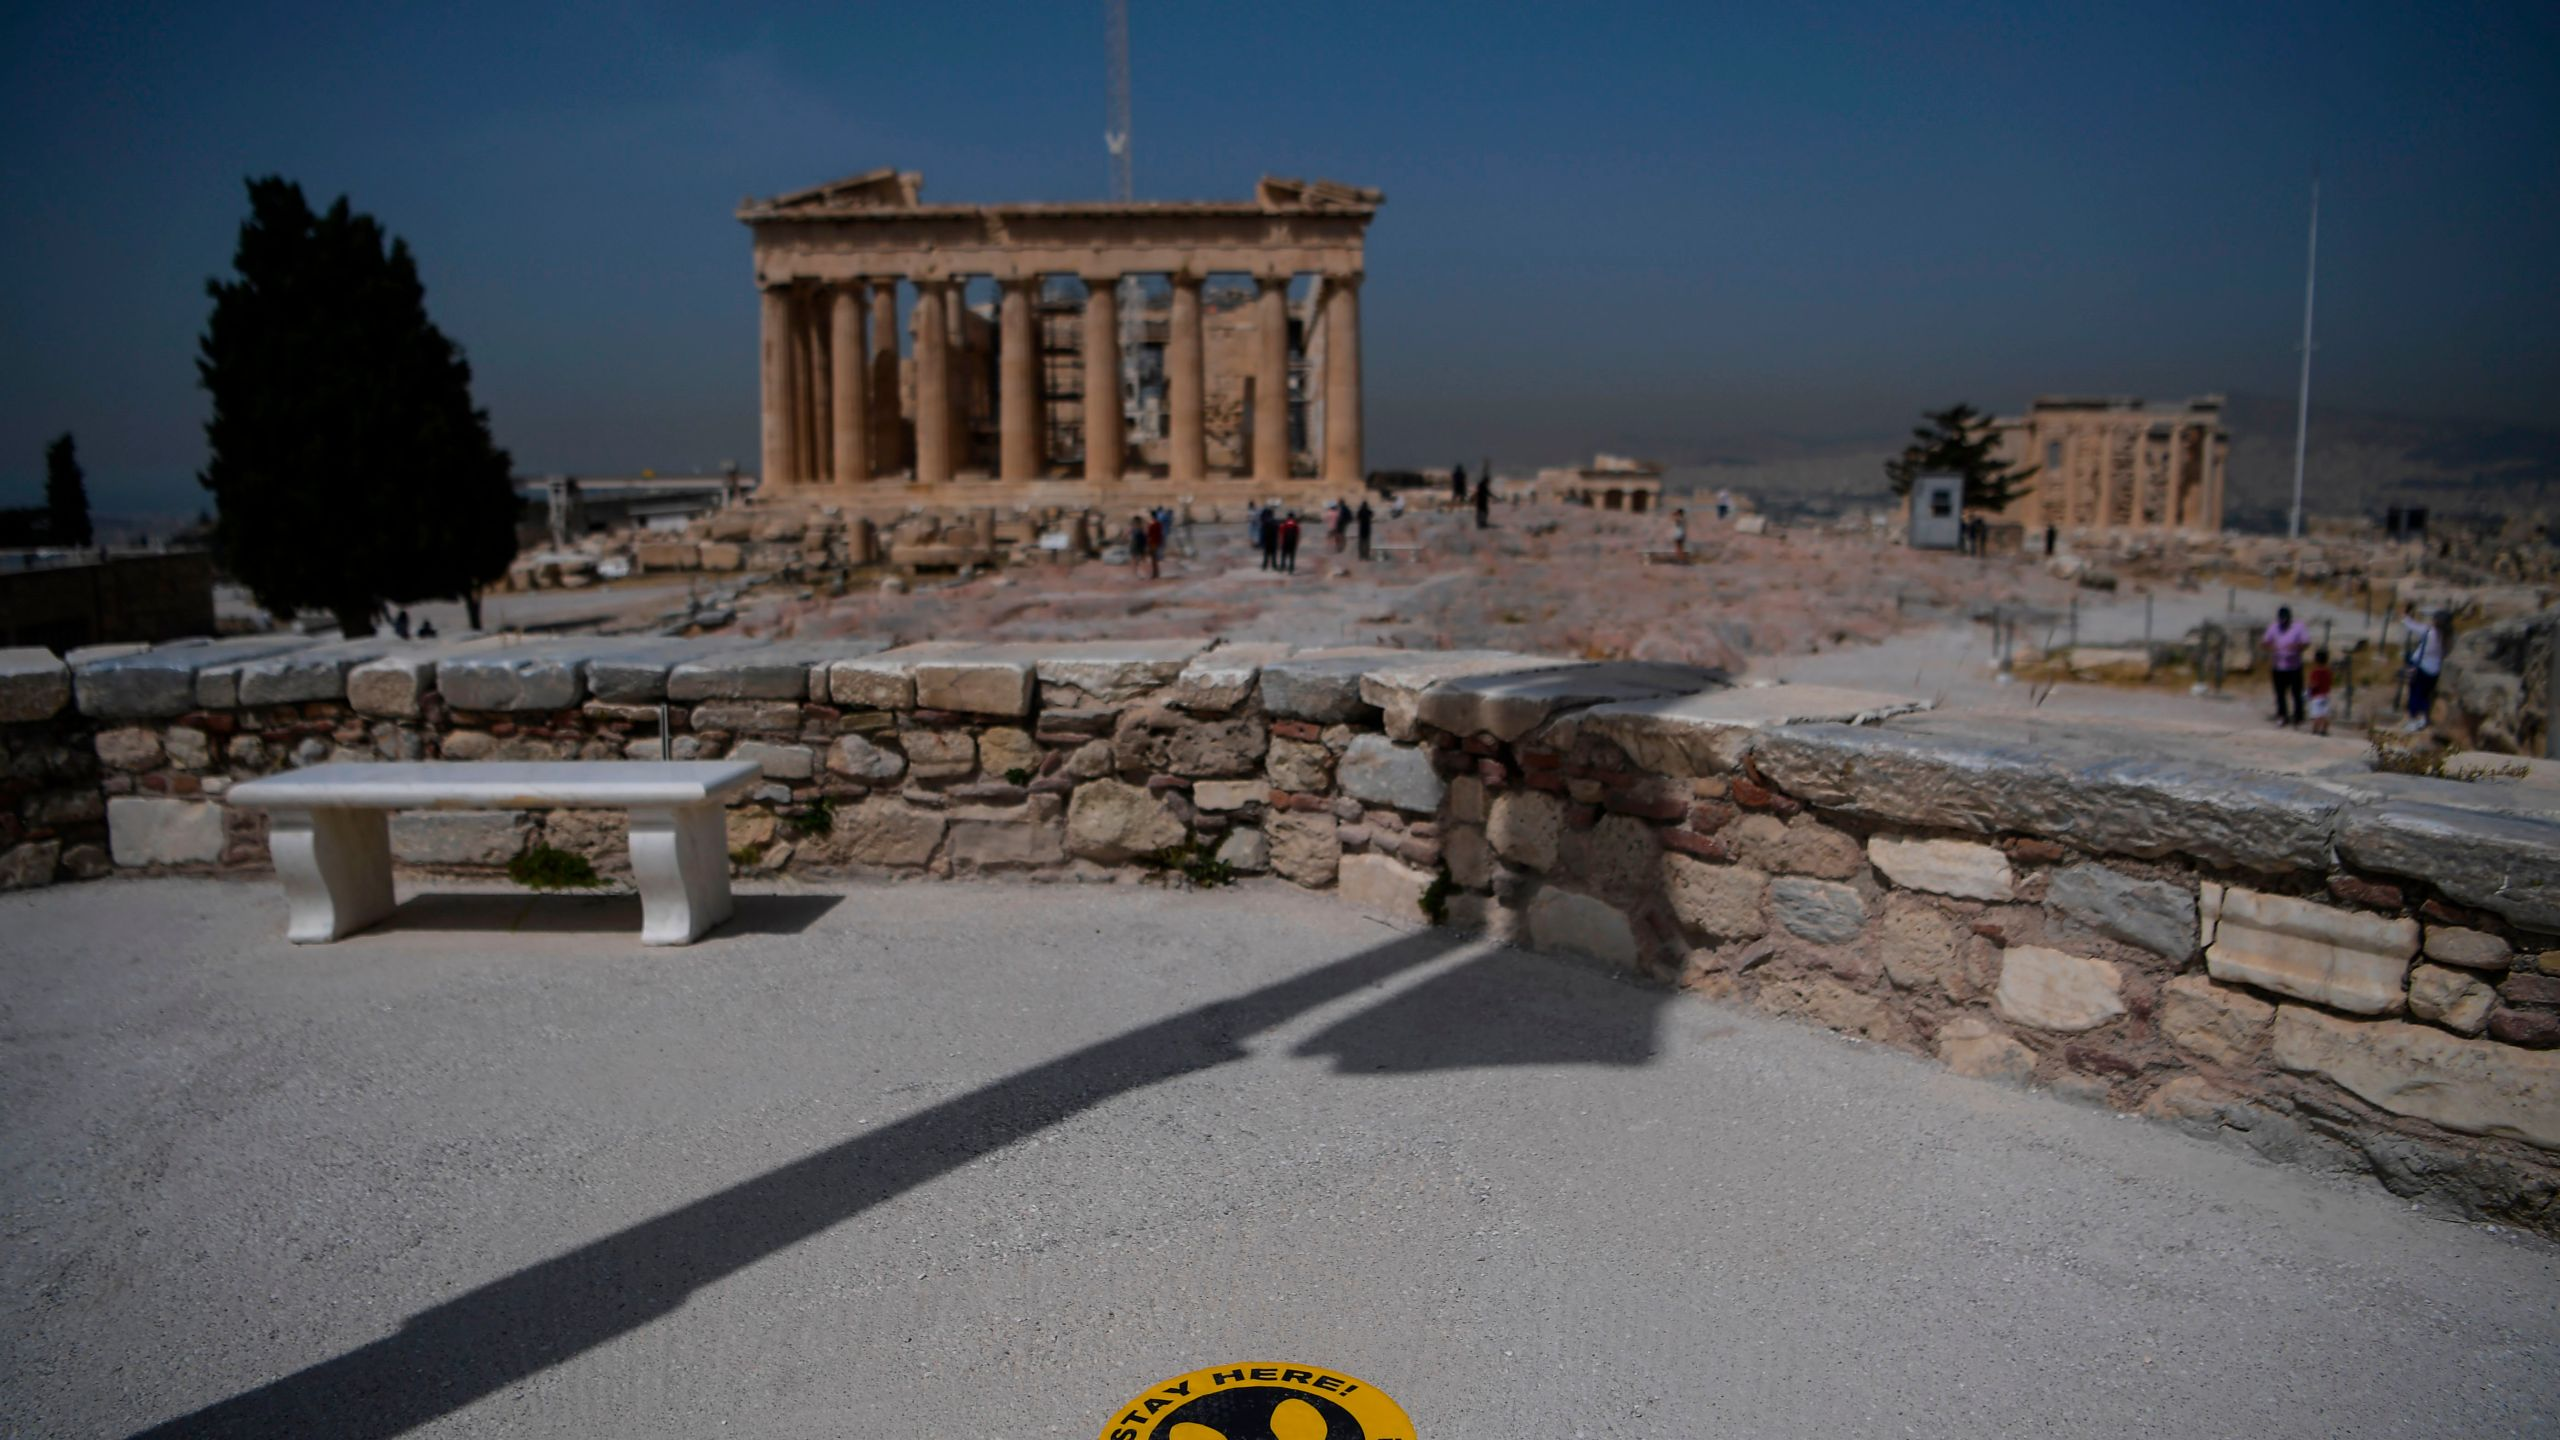 A picture taken on May 18, 2020 shows a sticker marking social distance on the ground in front of the Parthenon temple on the archeological site of the Acropolis in Athens amid the pandemic of the novel coronavirus. (Aris MESSINIS / Getty Images via AFP)